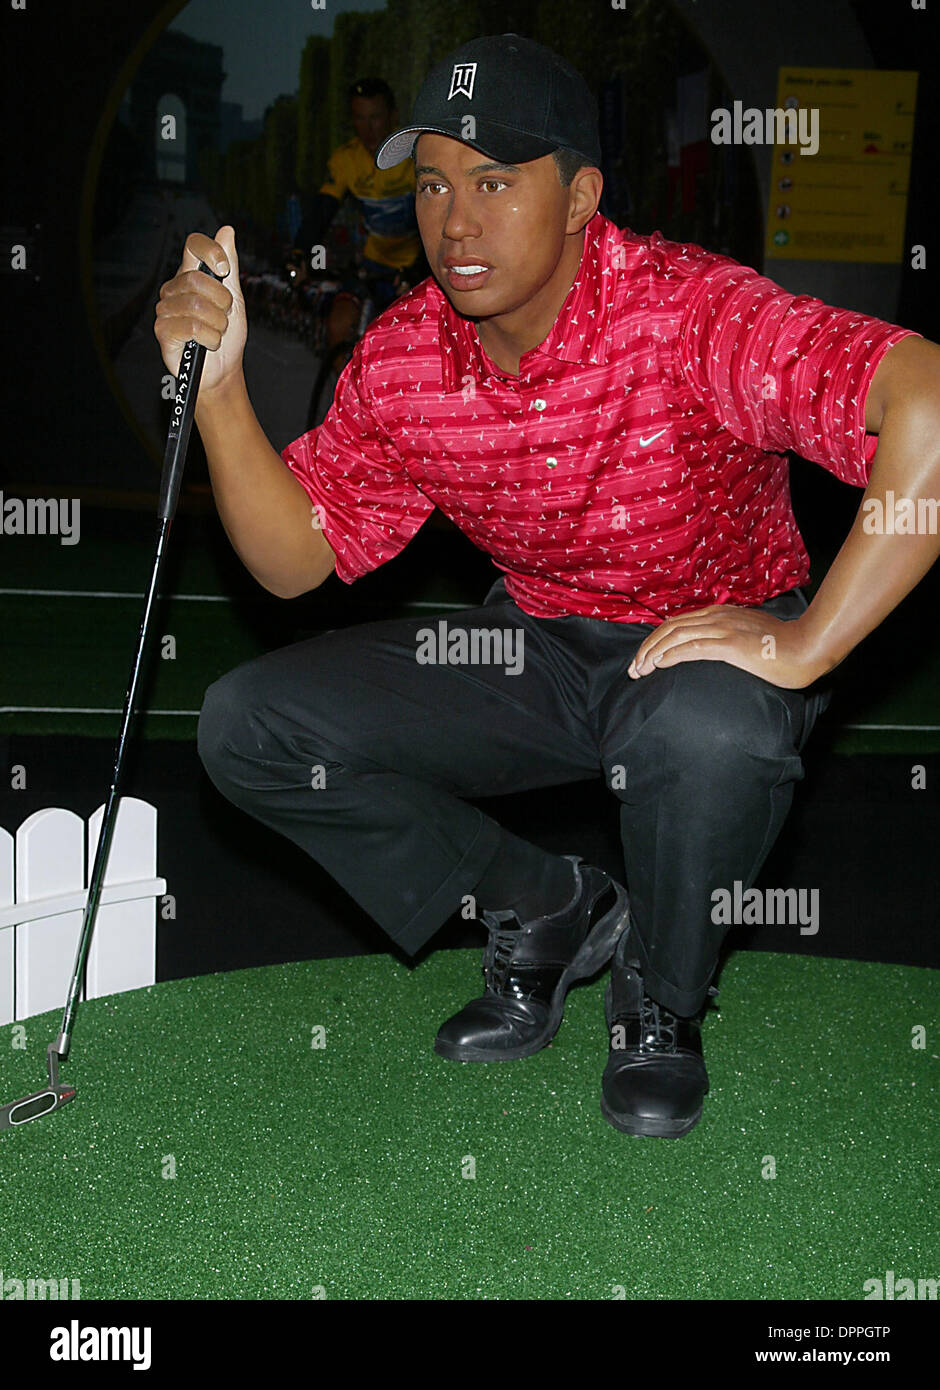 Sept. 21, 2006 - K49944LCV.MADAME TUSSAUDS WAX MUSEUM UNVEILS THE TIGER WOOD WAX WORKSAT THE MADAME TUSSAUDS WAX MUSEUM TIMES SQUARE , NEW YORK CITY.09-21-2006. LCV-   2006.TIGER WOODS WAX WORKS(Credit Image: © Globe Photos/ZUMAPRESS.com) - Stock Image